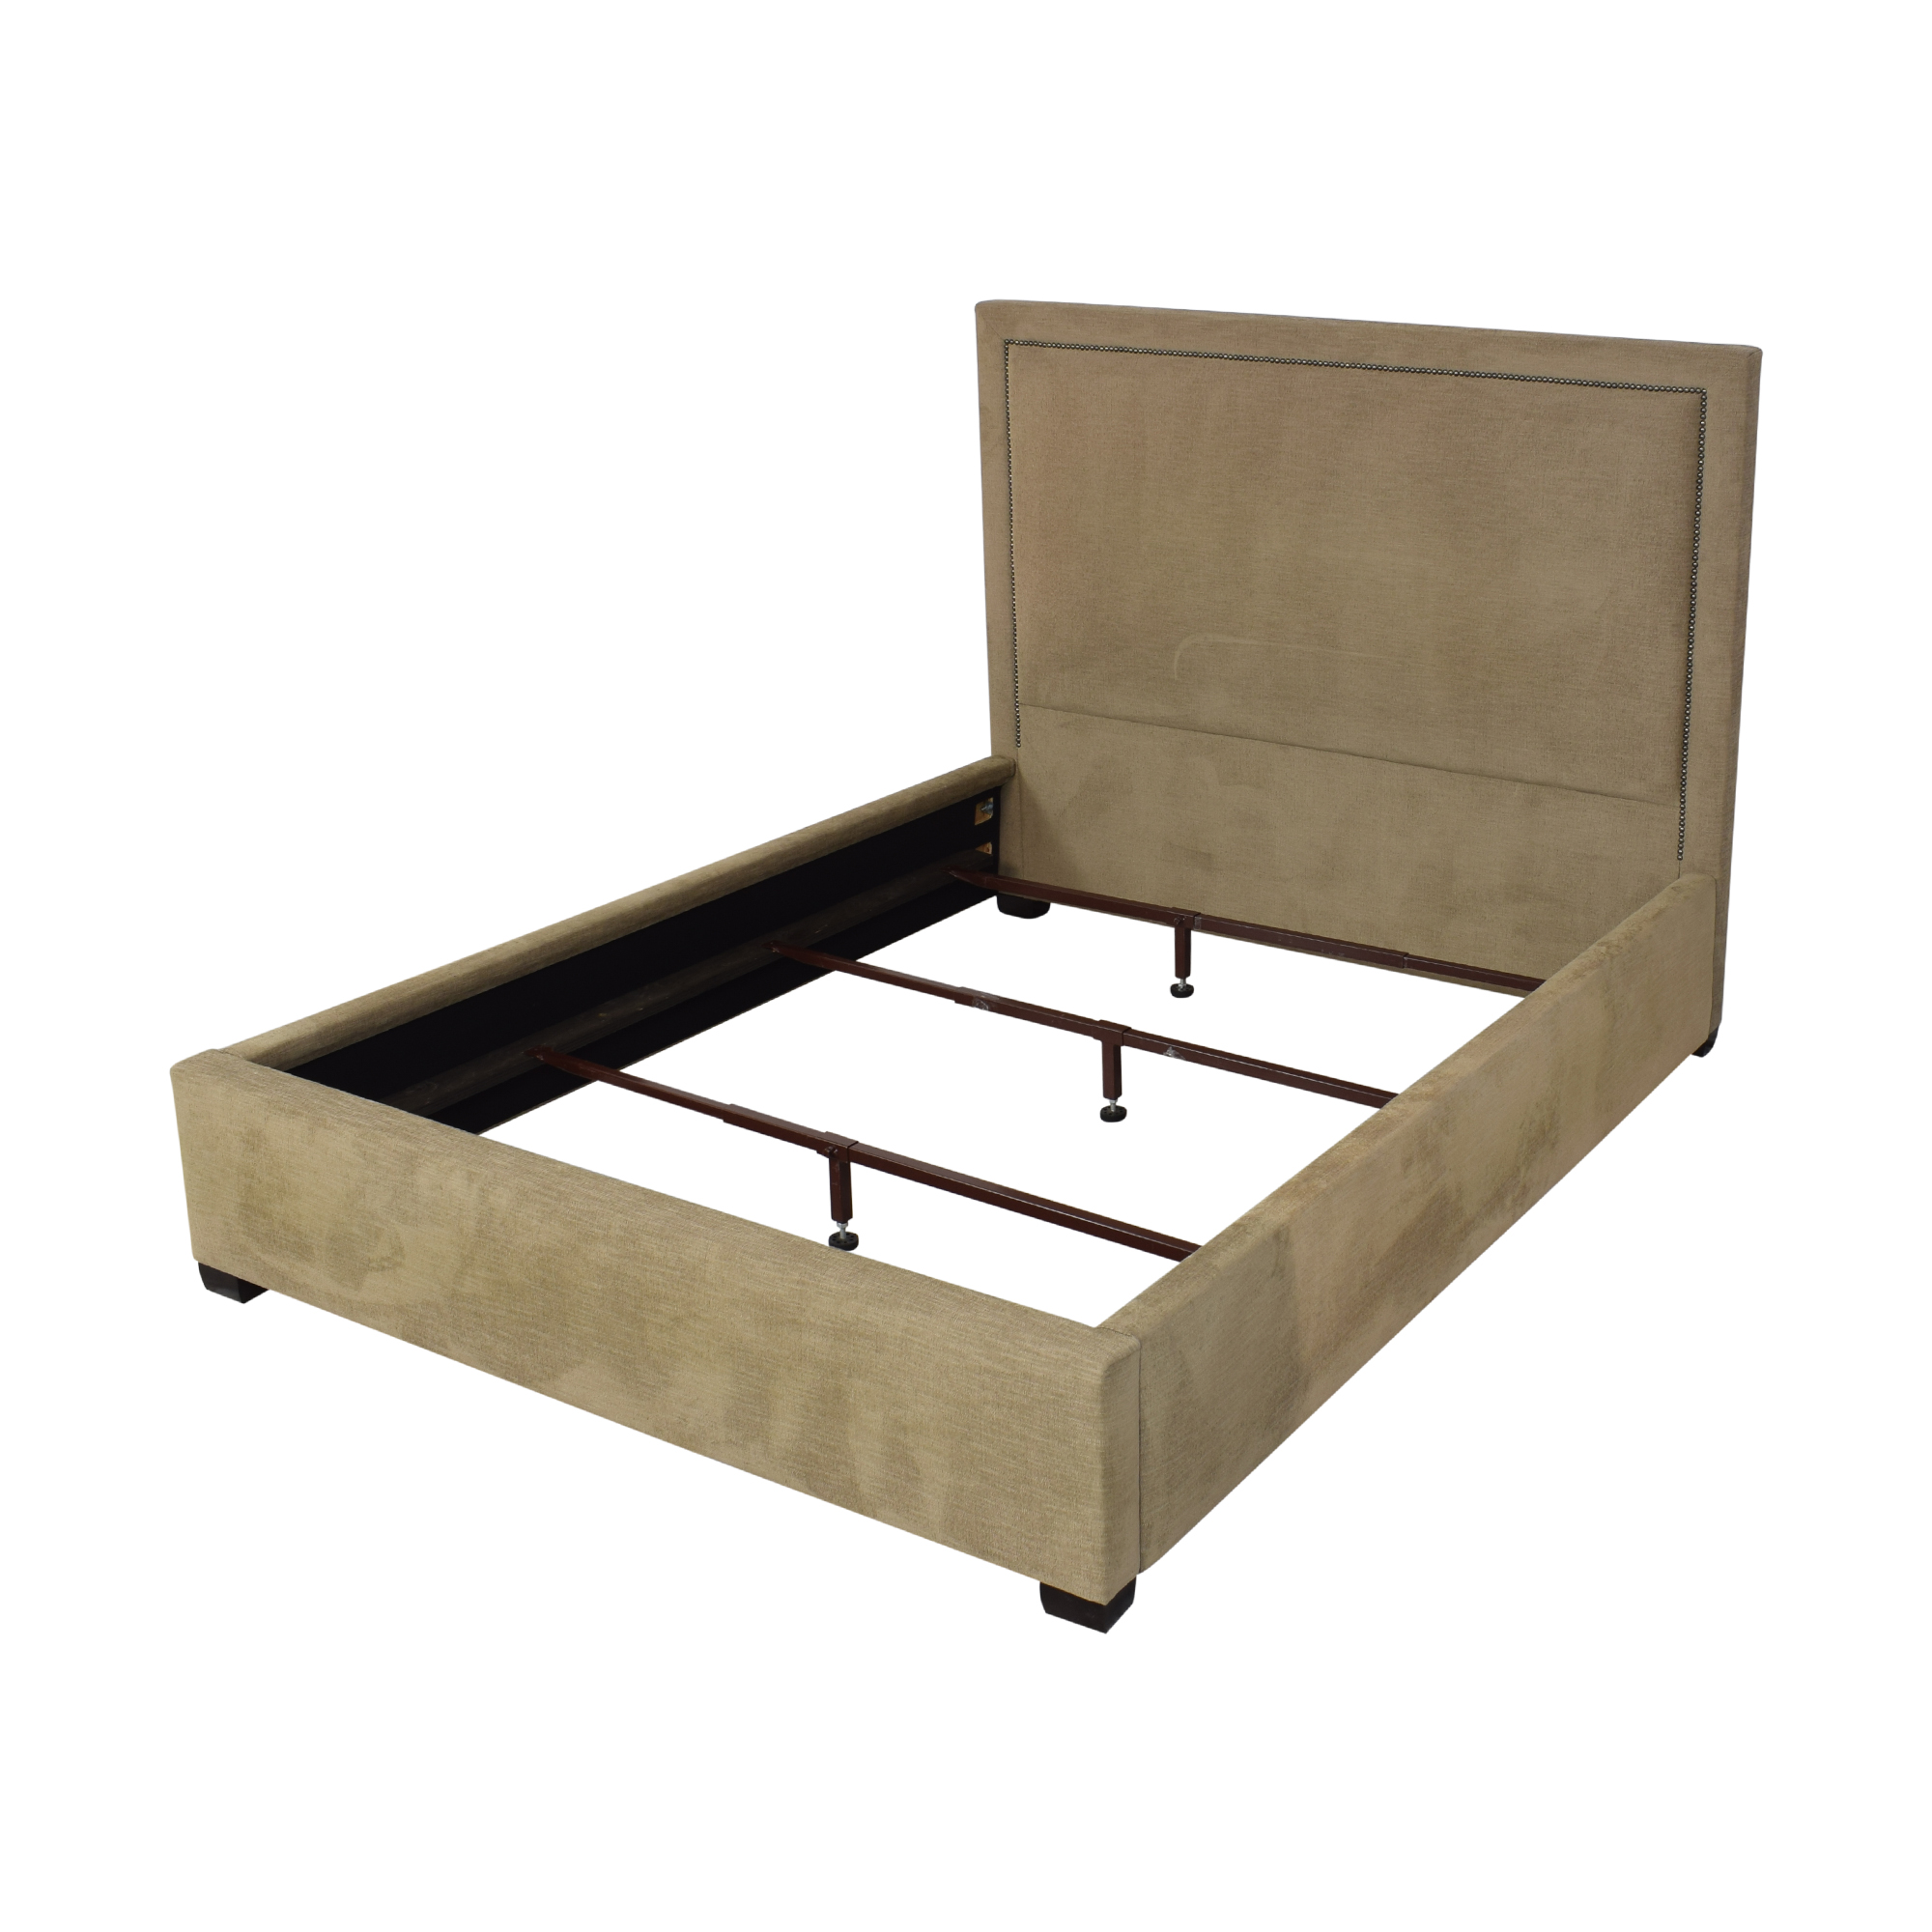 Raymour & Flanigan Raymour & Flanigan Maria Queen Bed price